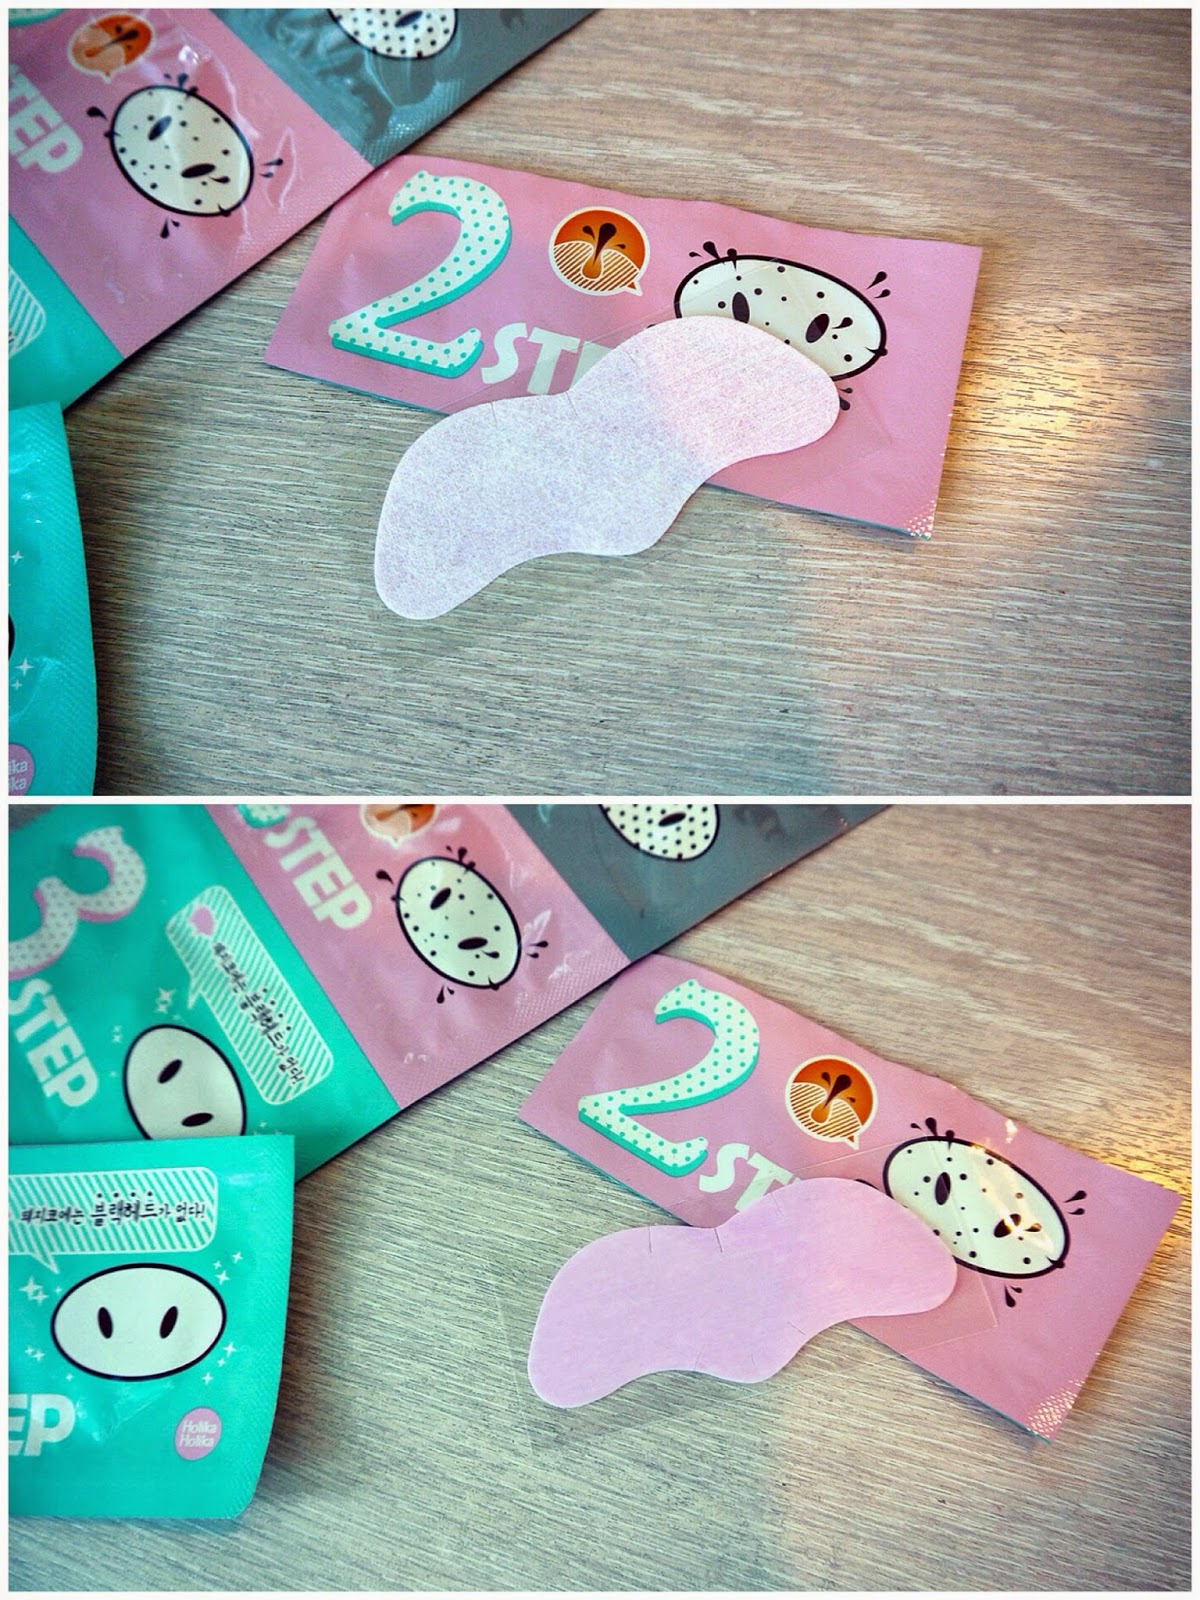 March 2015 A New Chapter Of Monthly Picks Baoers Holika Pig Nose Clear Black Head Perfect Sticker 10pcs Step 2 Works Like Normal Blackhead Pack Wet Your With Water Gentle Reminder Not Too And Place On After 10 15 Minutes